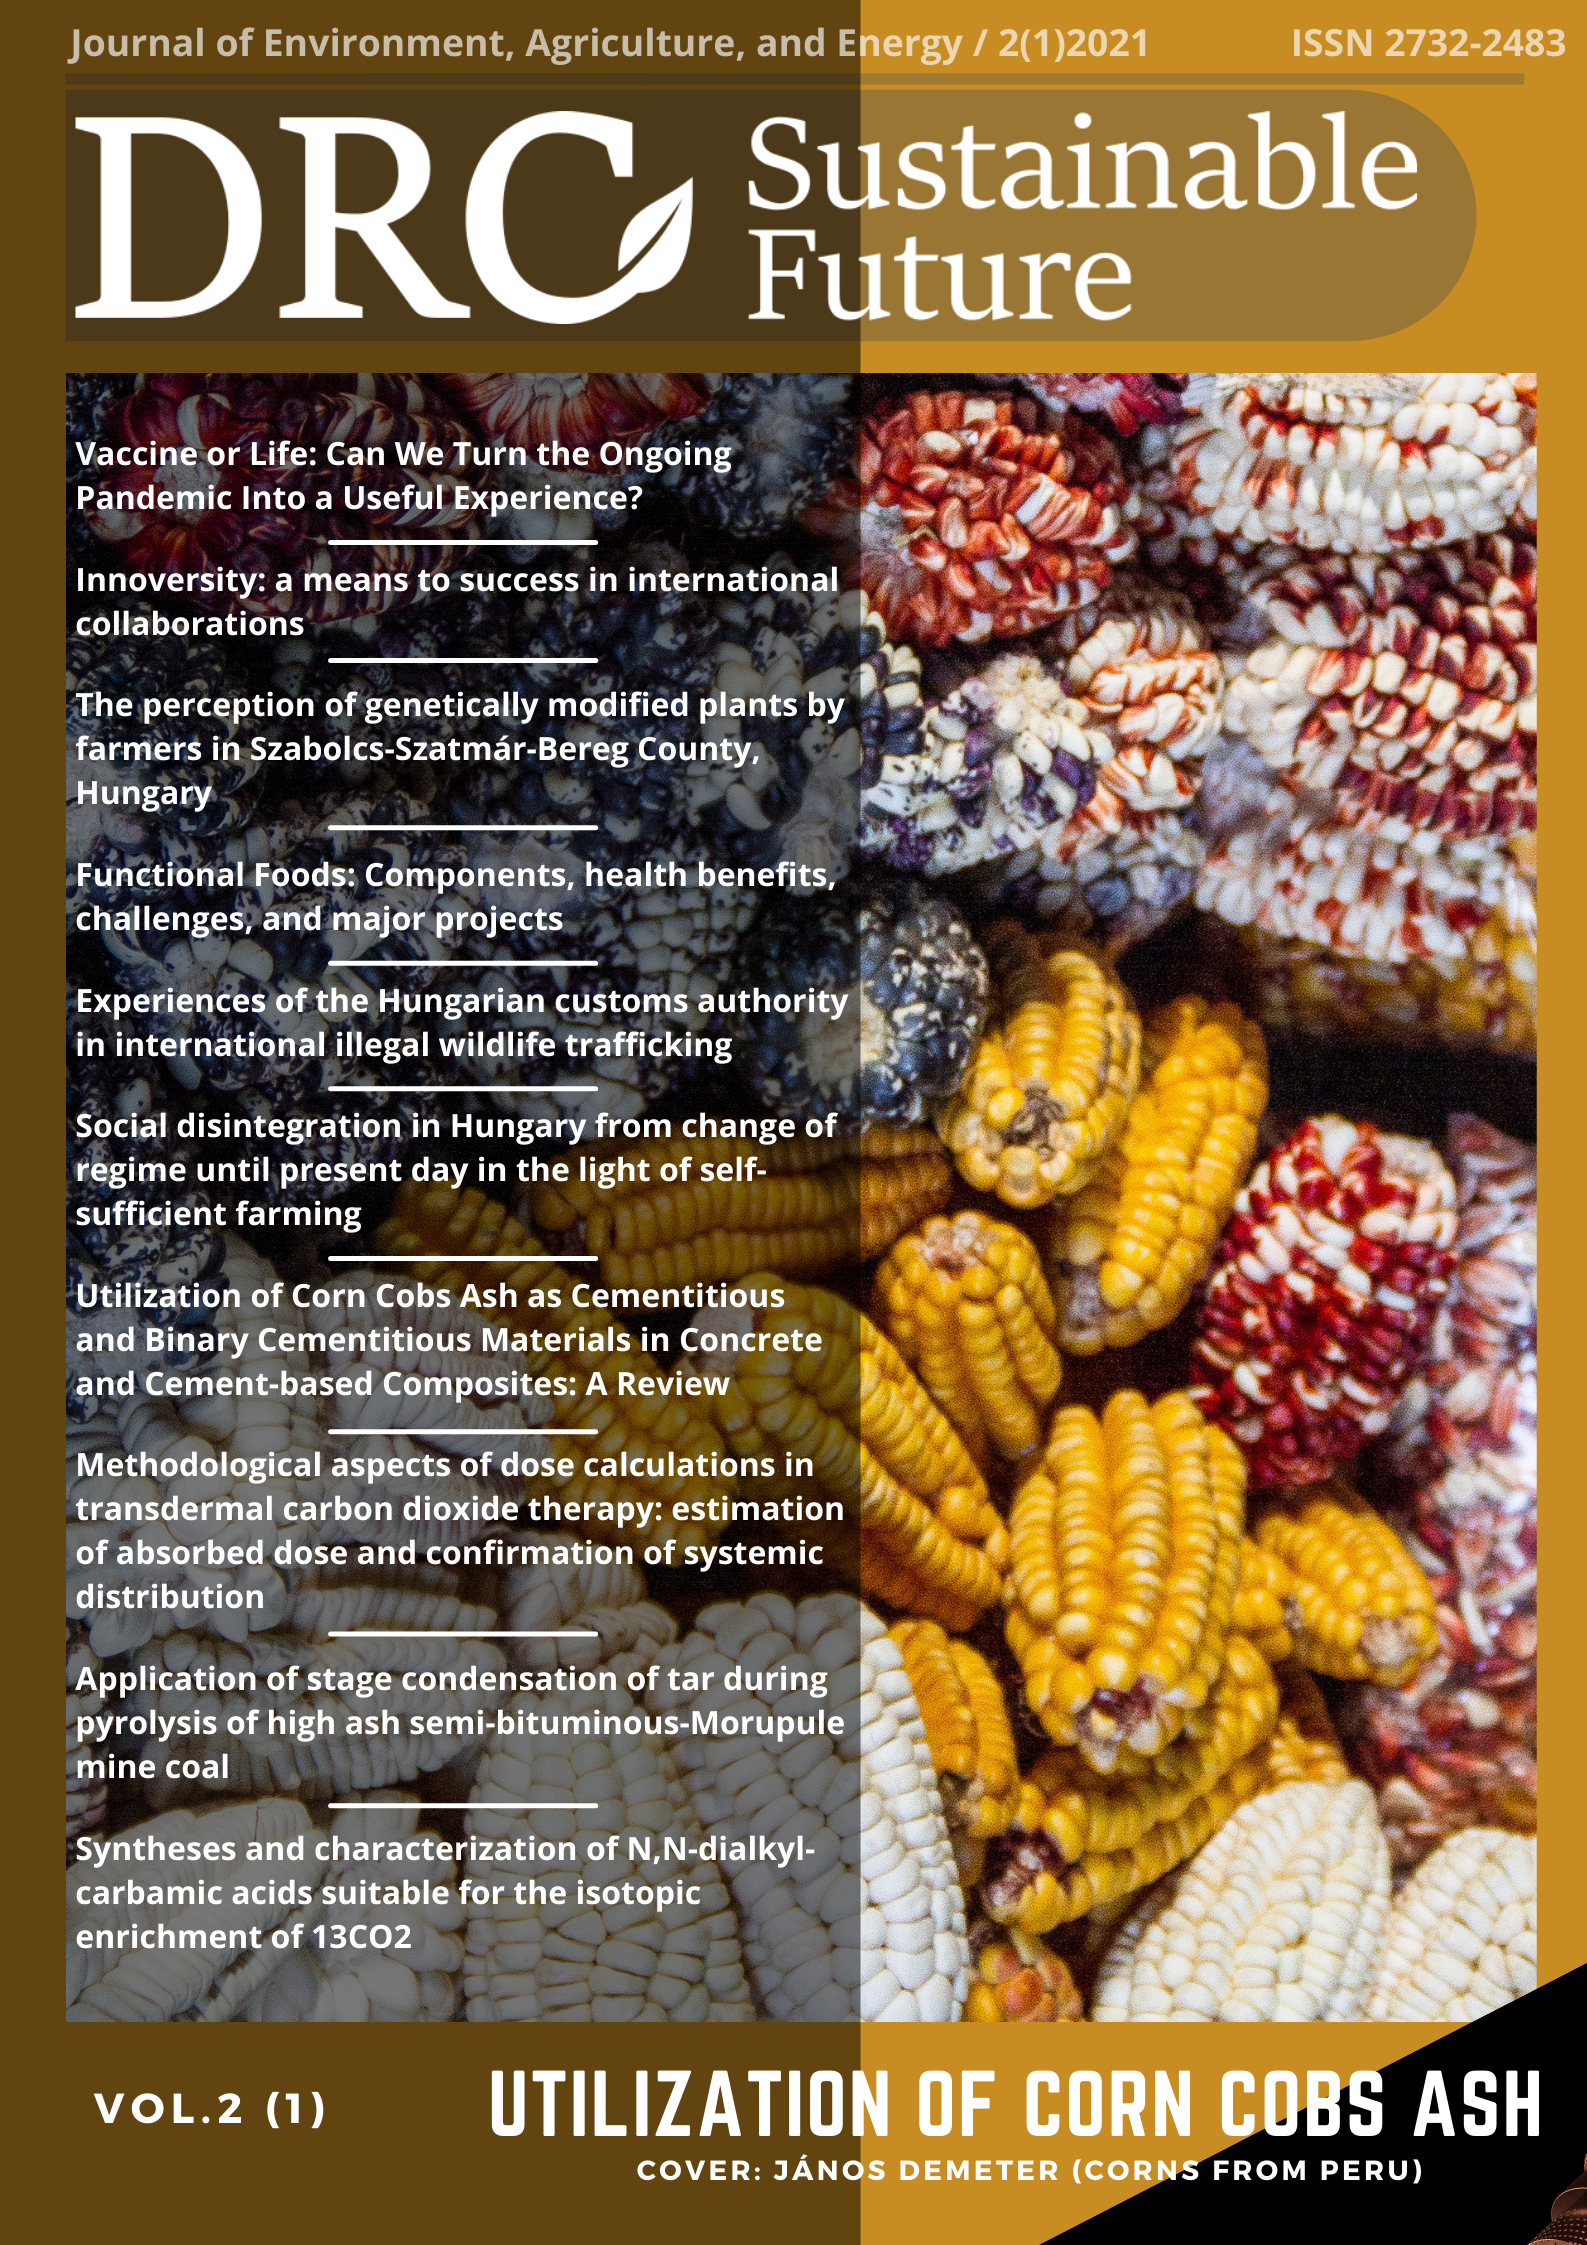 DRC Sustainable Future: Journal of Environment, Agriculture, and Energy